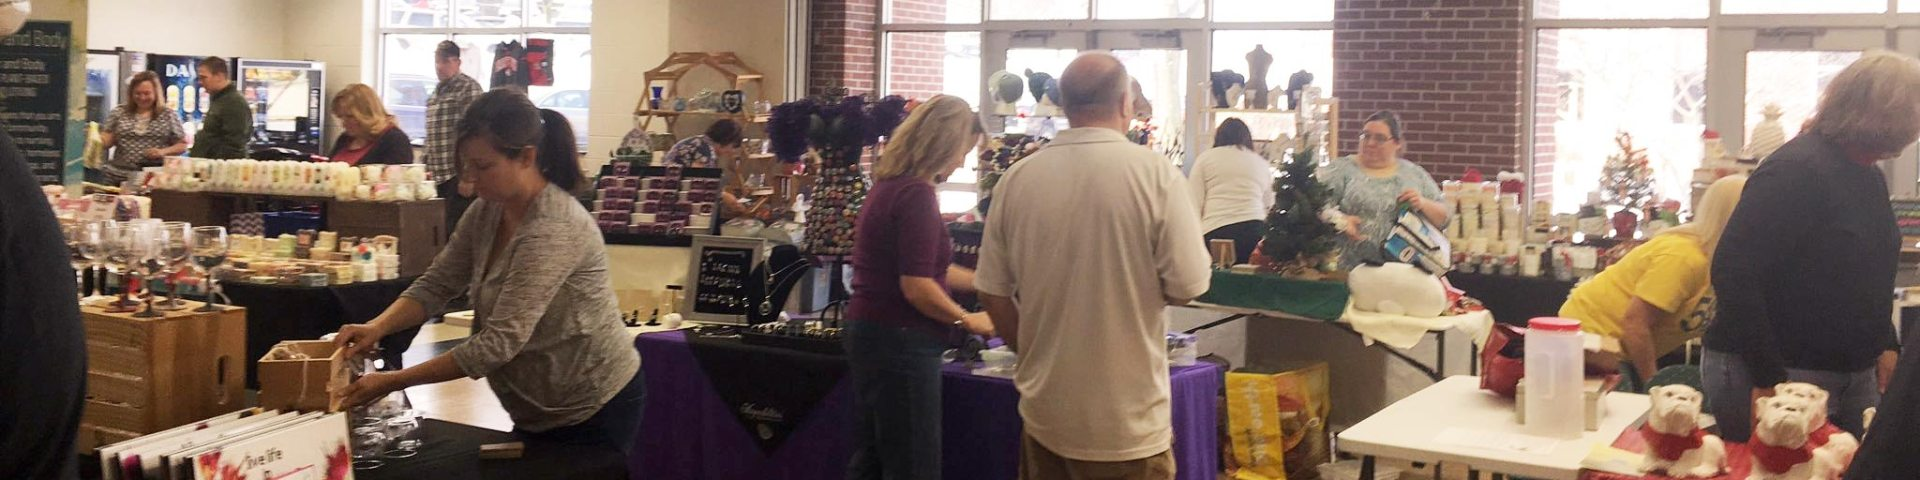 Patrons at craft fair